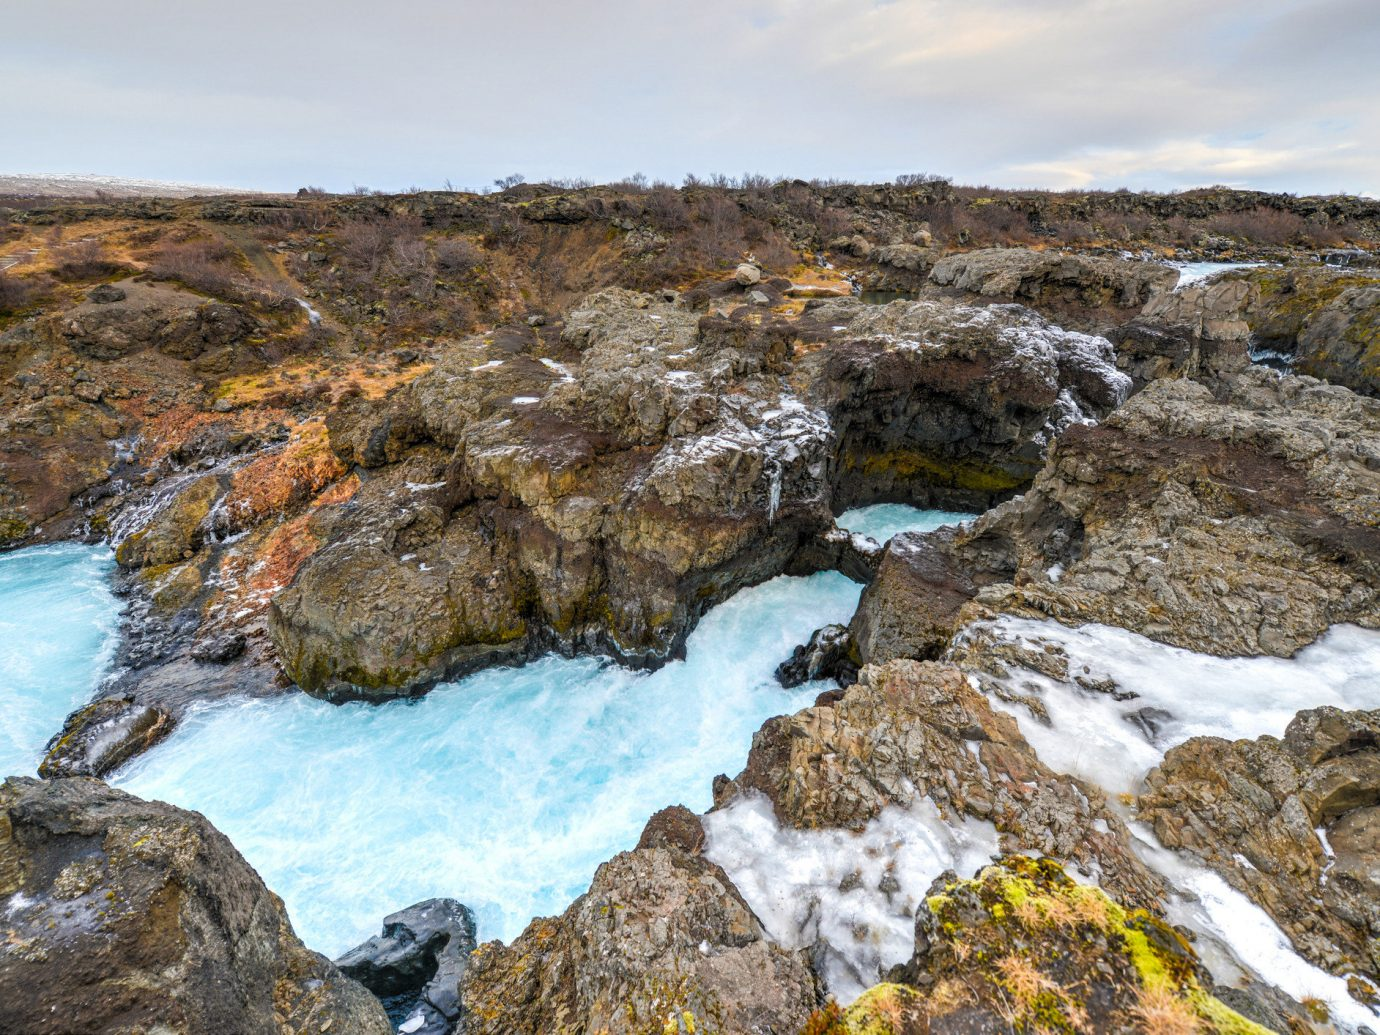 Iceland Outdoors + Adventure rock outdoor rocky water Nature mountain Coast geology formation sky bedrock stream outcrop escarpment landscape water feature watercourse hillside